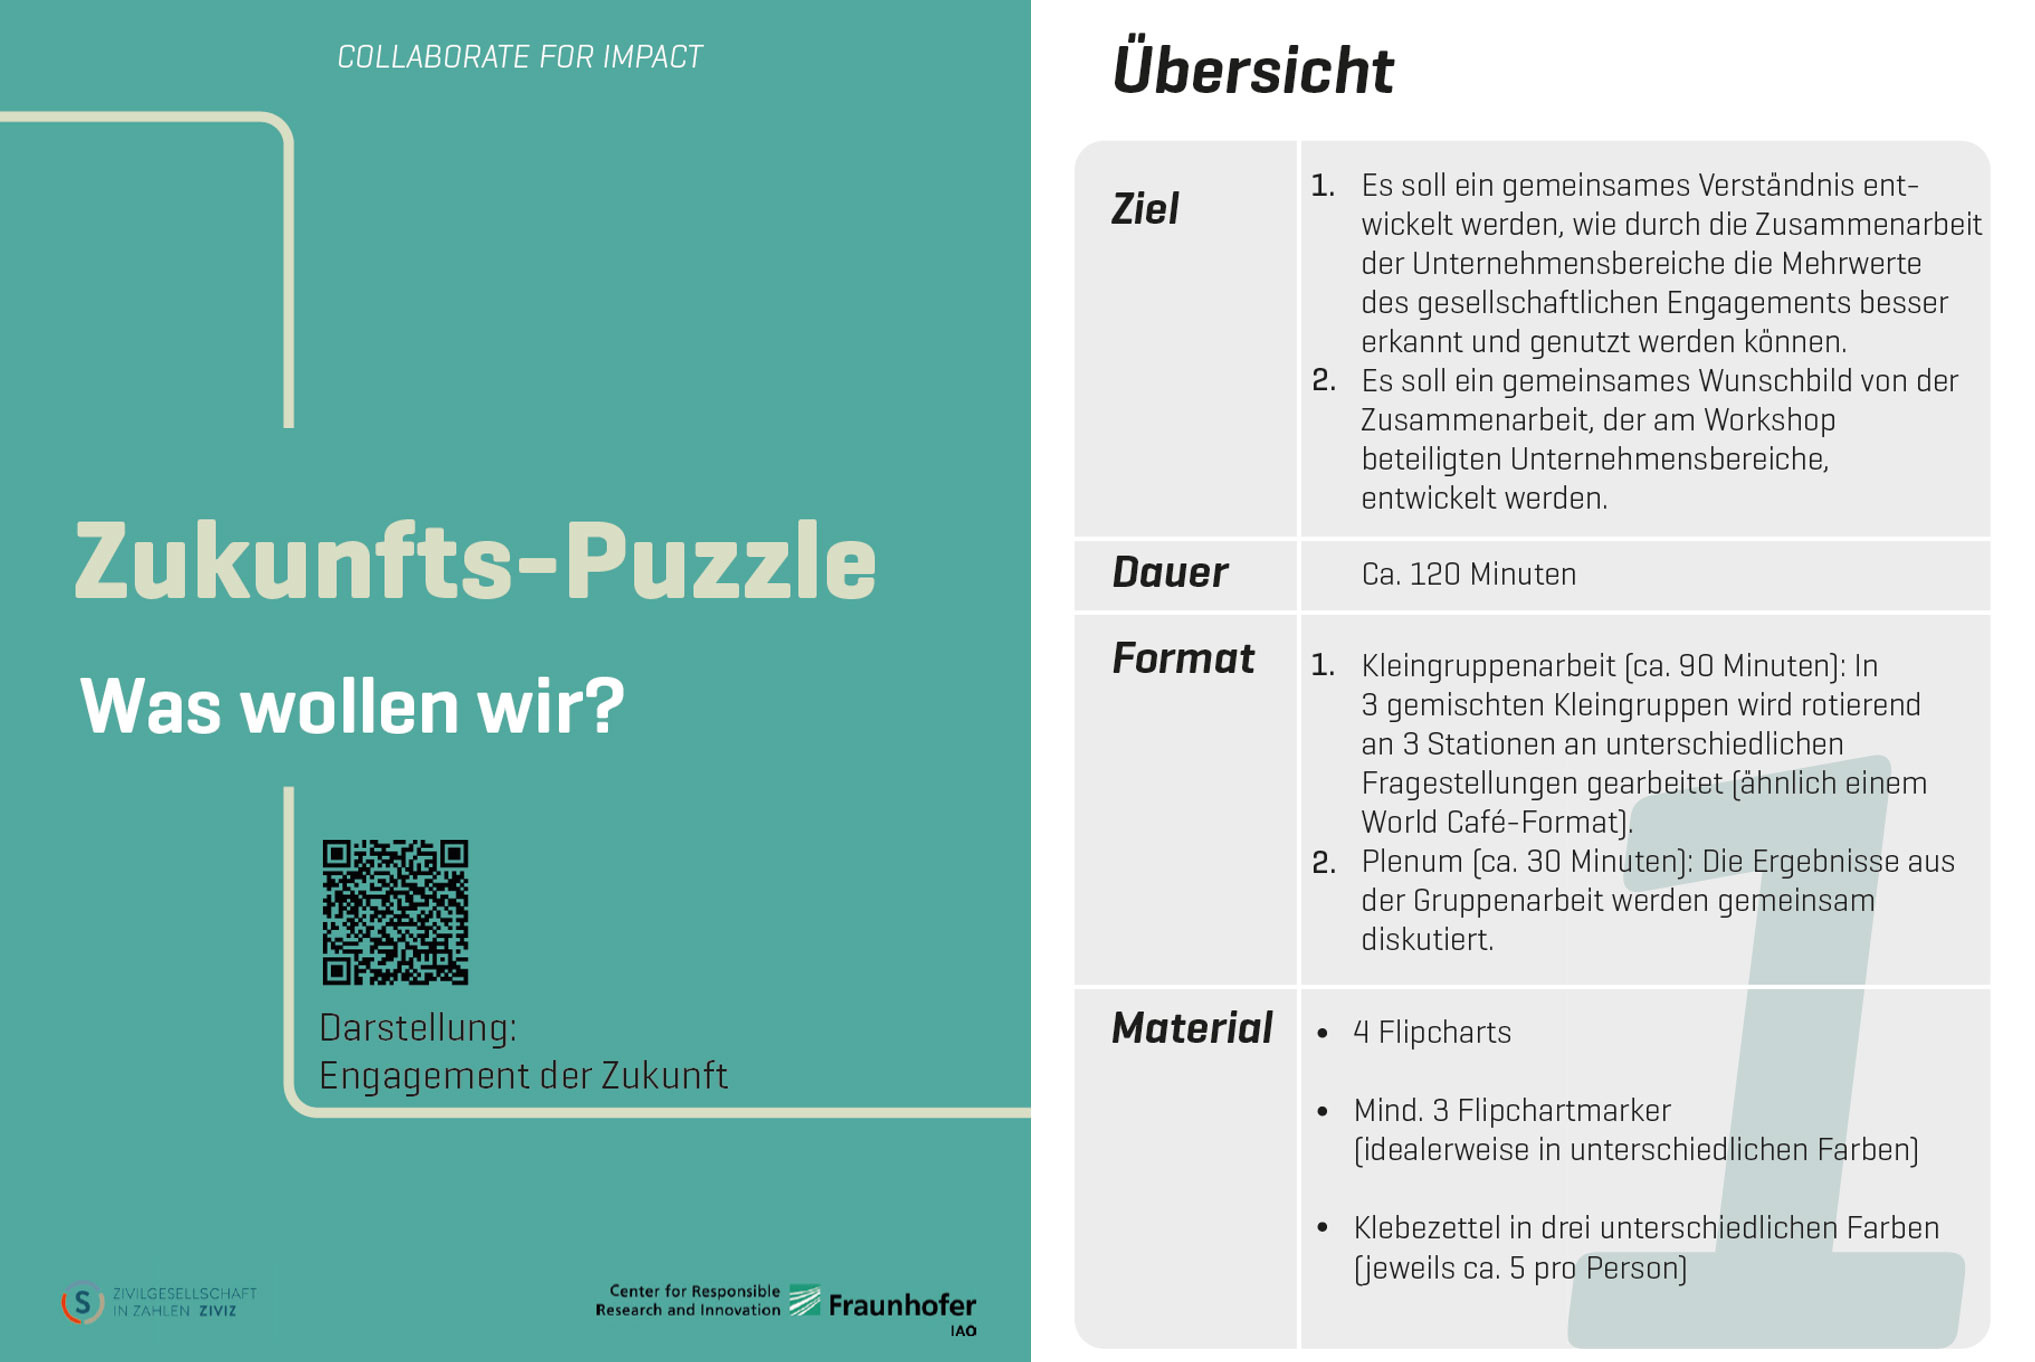 Abbildung: Workshop-Format COLLABORATE FOR IMPACT.